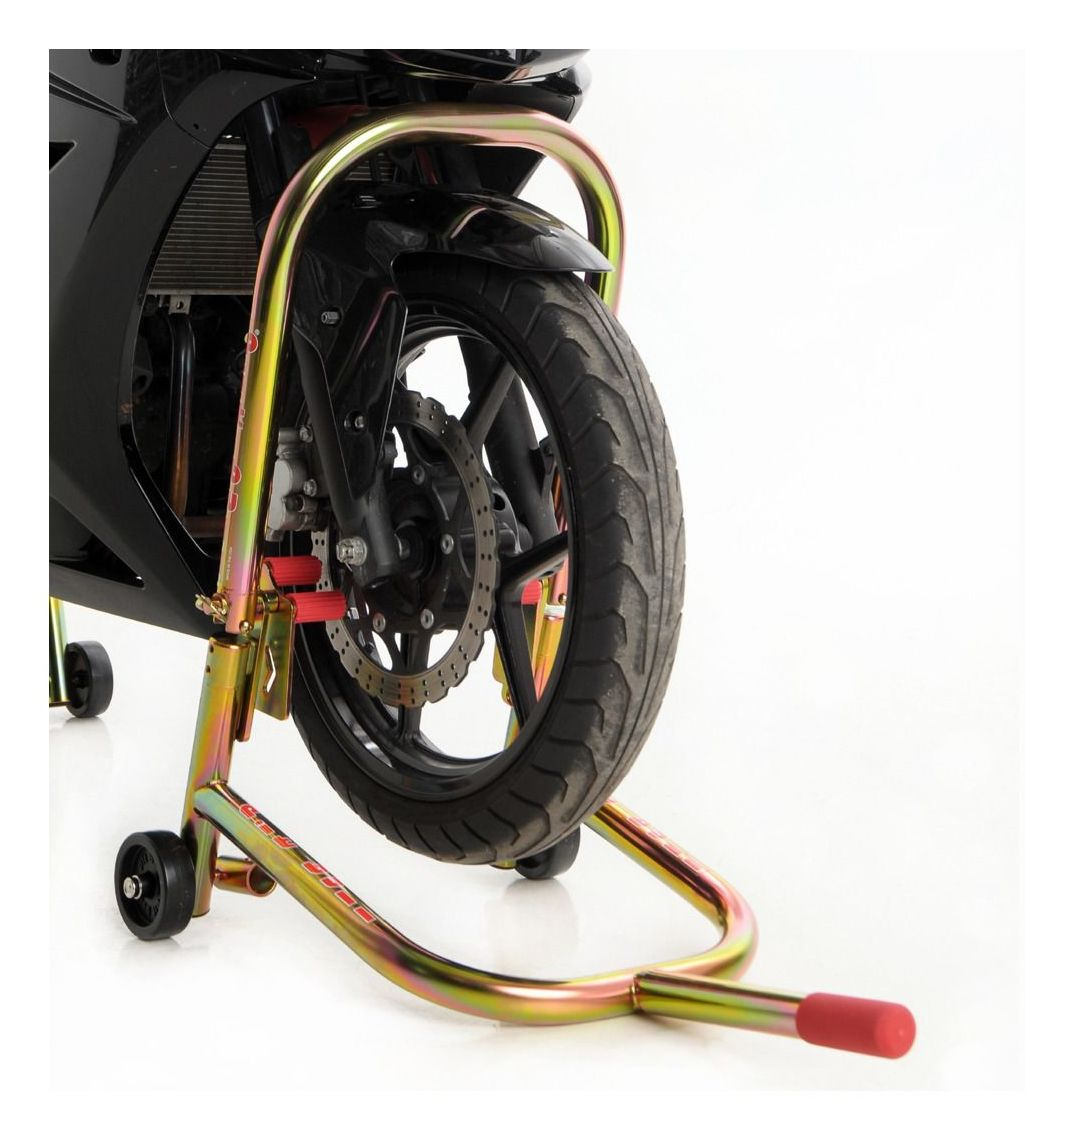 Pit Bull Hybrid Dual Lift Stand Cycle Gear